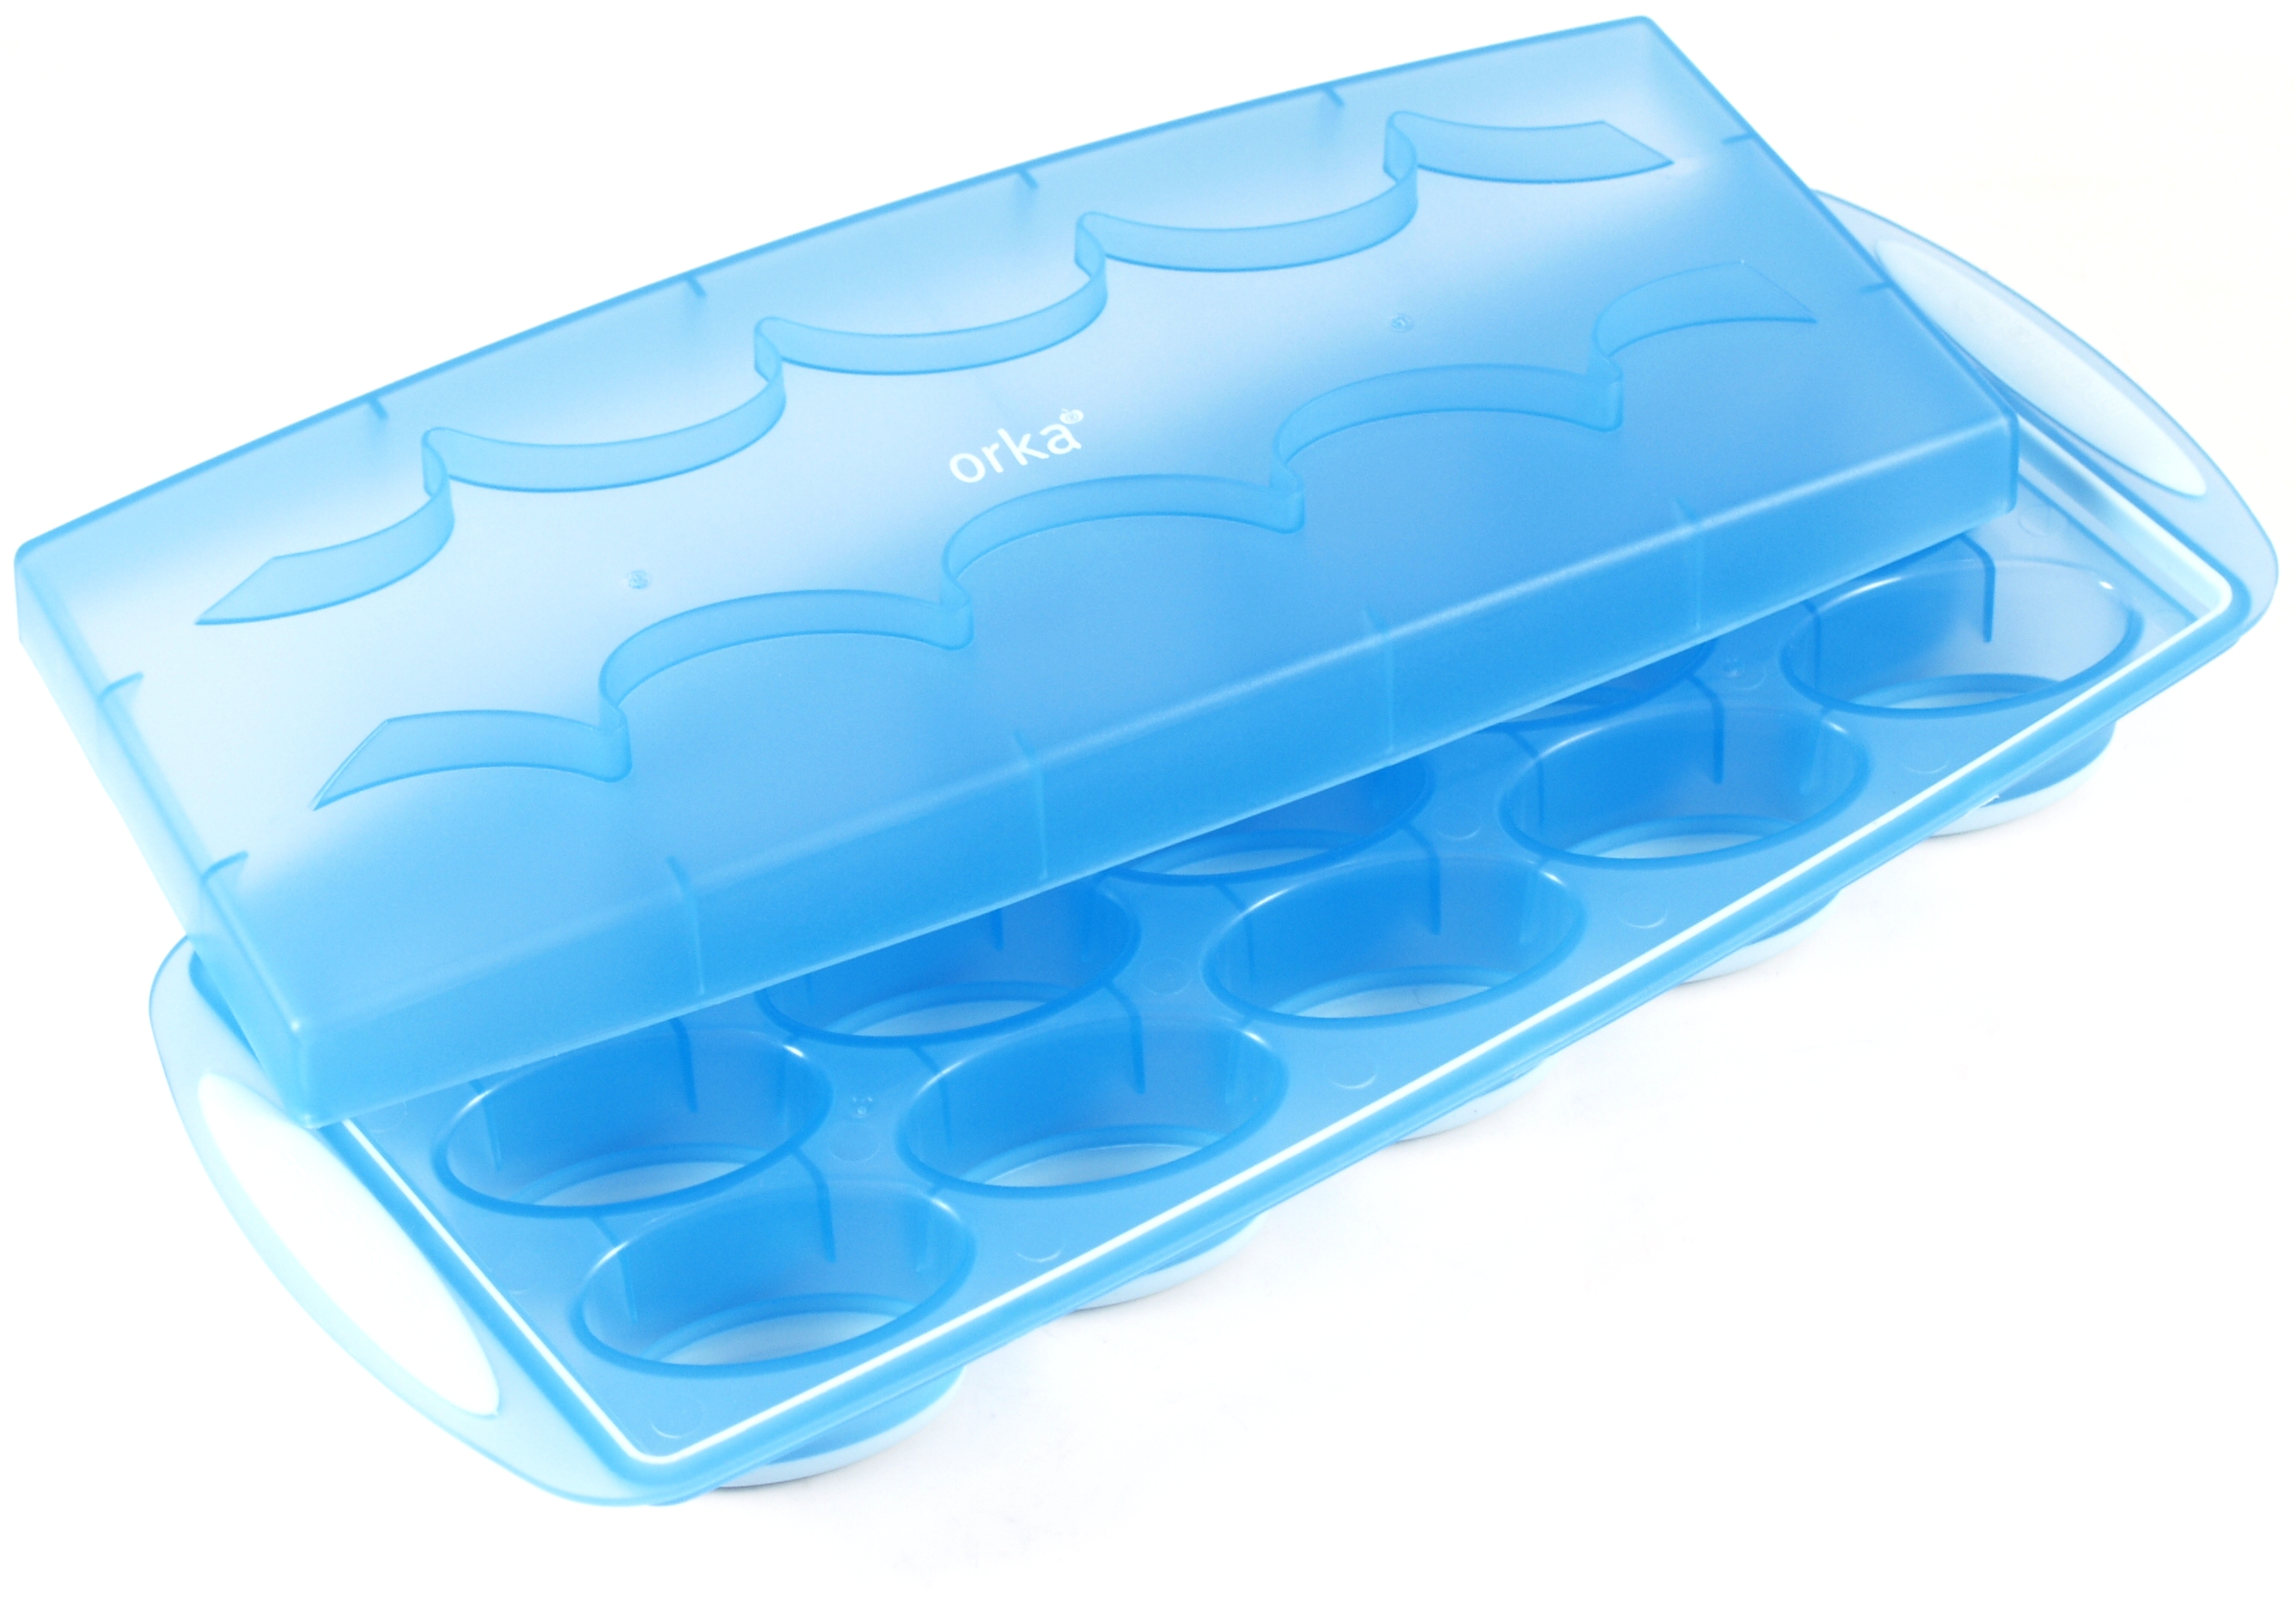 Orka Flexible Ice Cube Tray with Lid in Translucent Blue